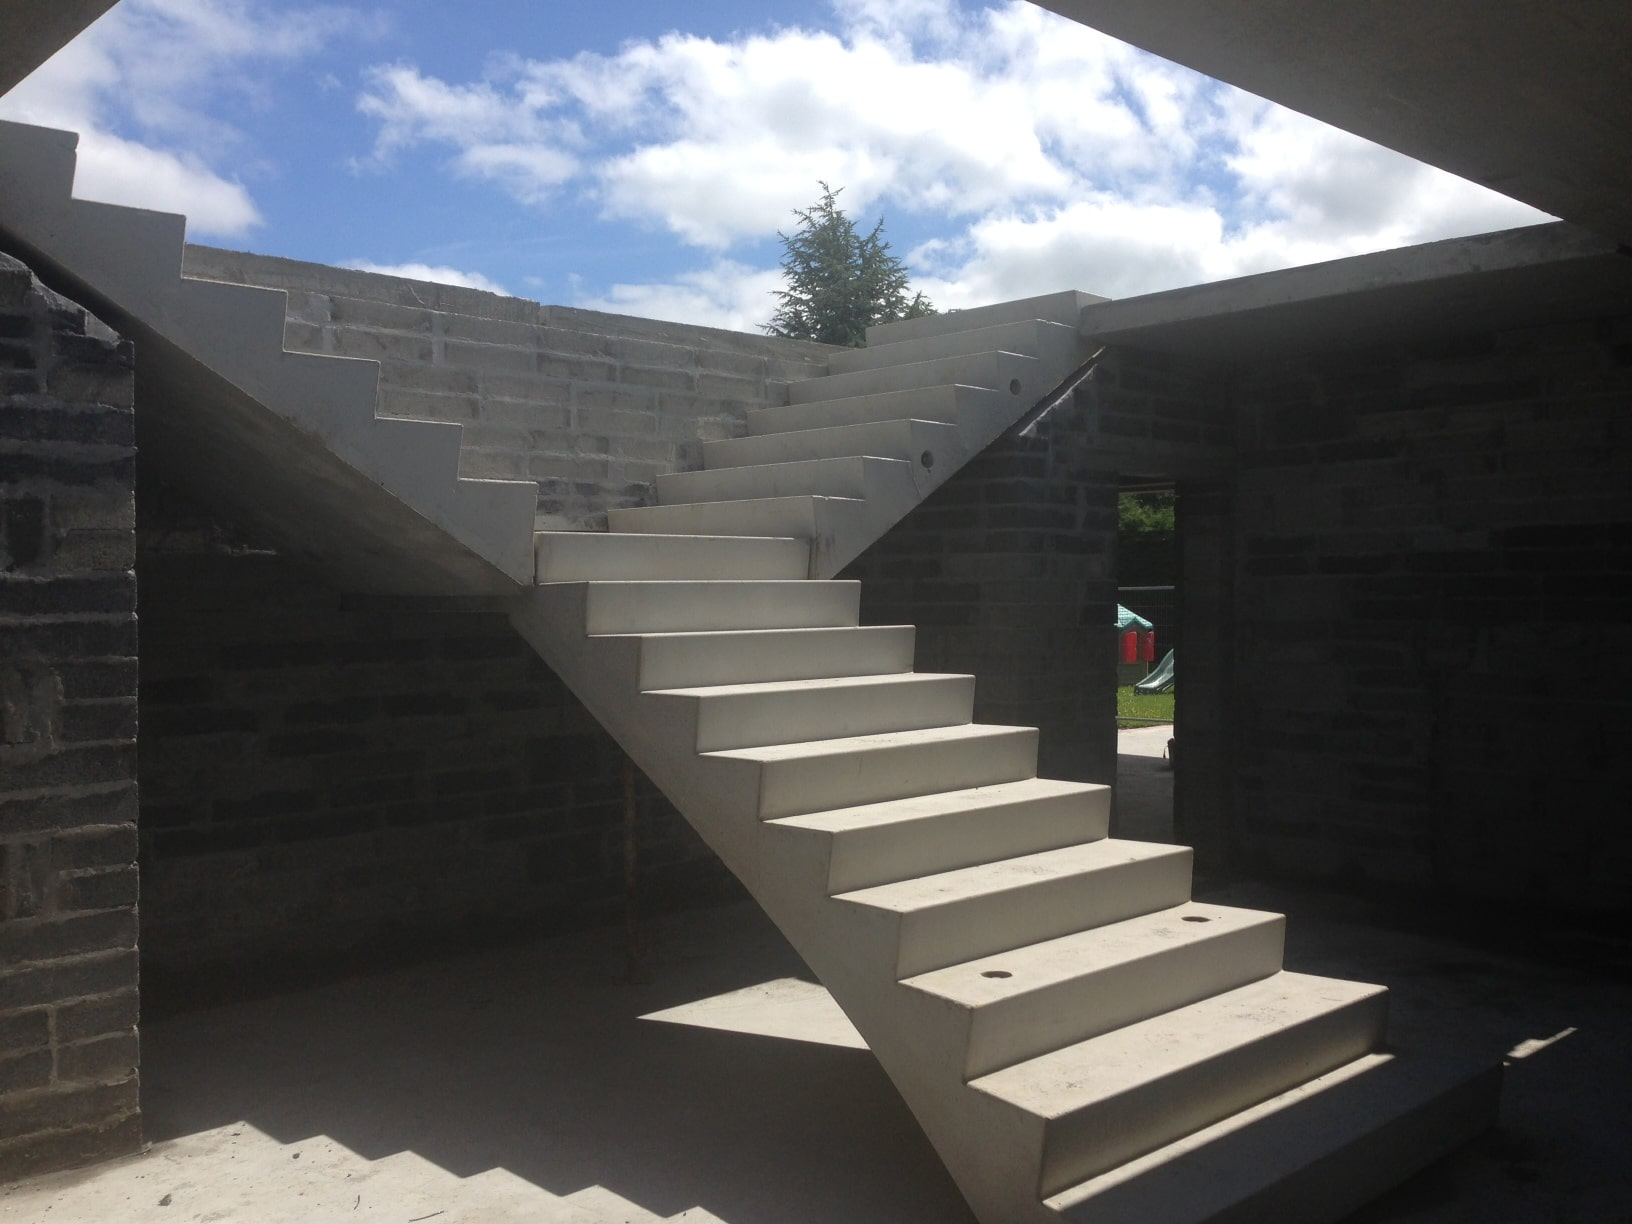 How to Construct Concrete Stairs?